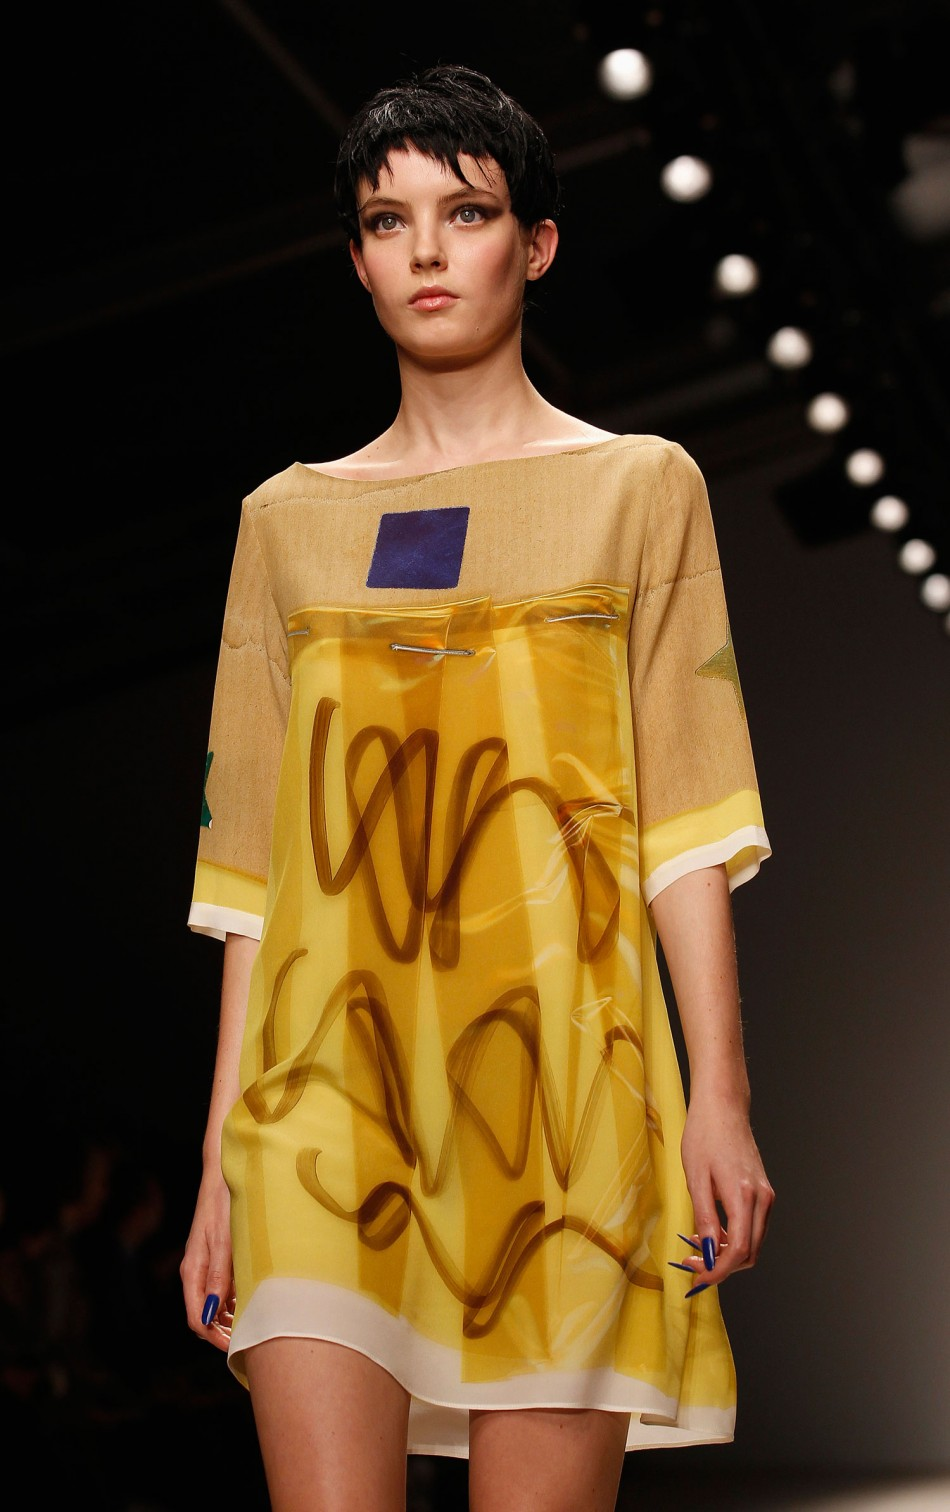 London Fashion Week 2012 (PHOTOS)